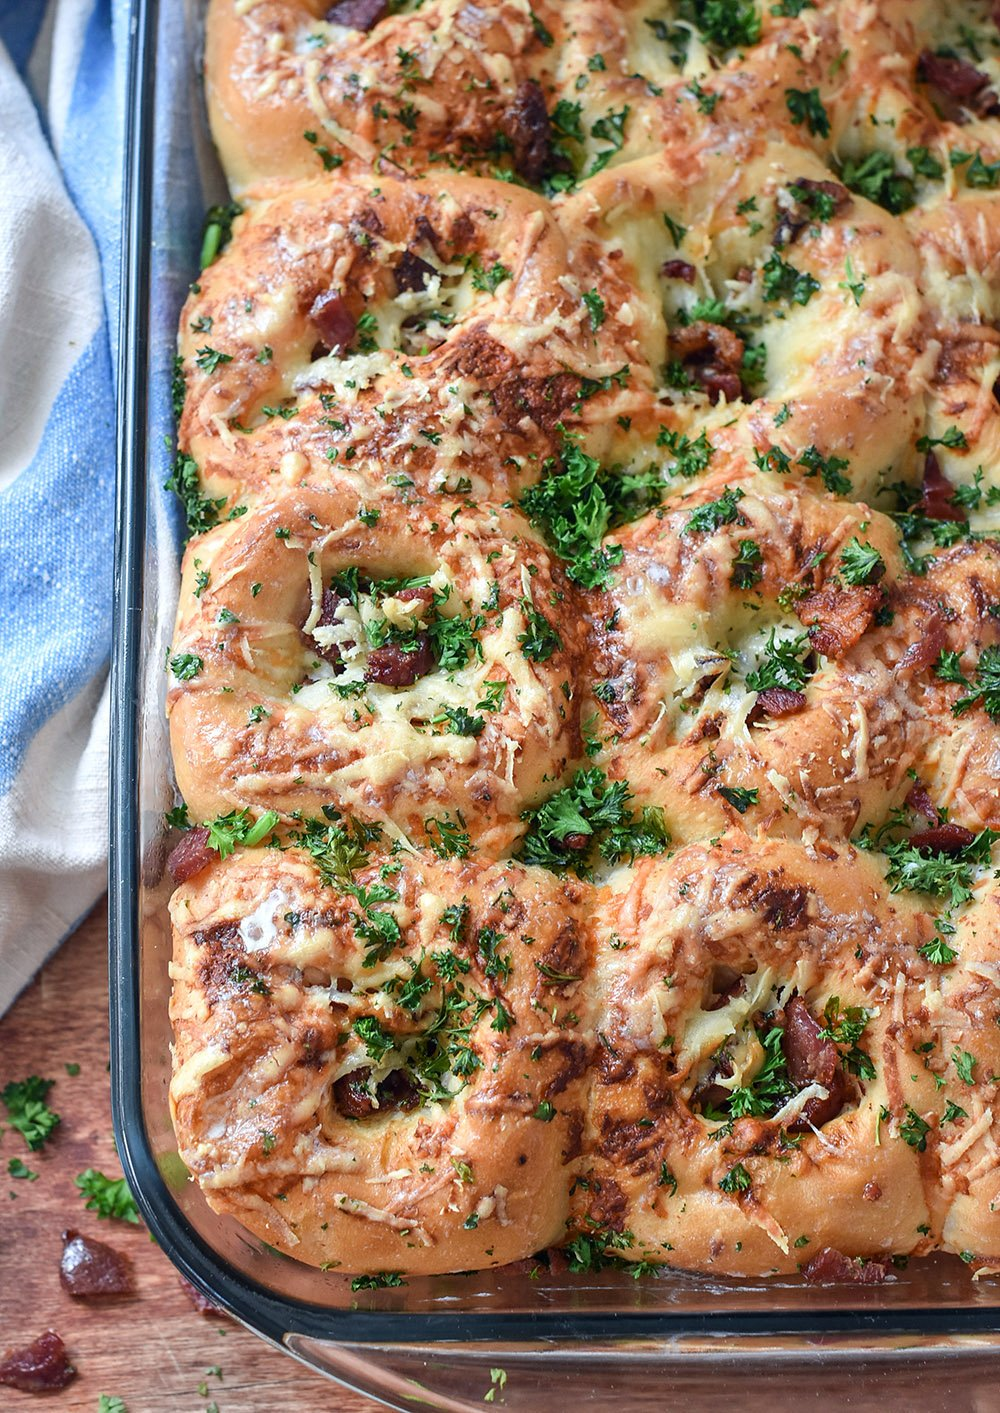 Baked dinner rolls with cheese, bacon, and fresh parsley on top.